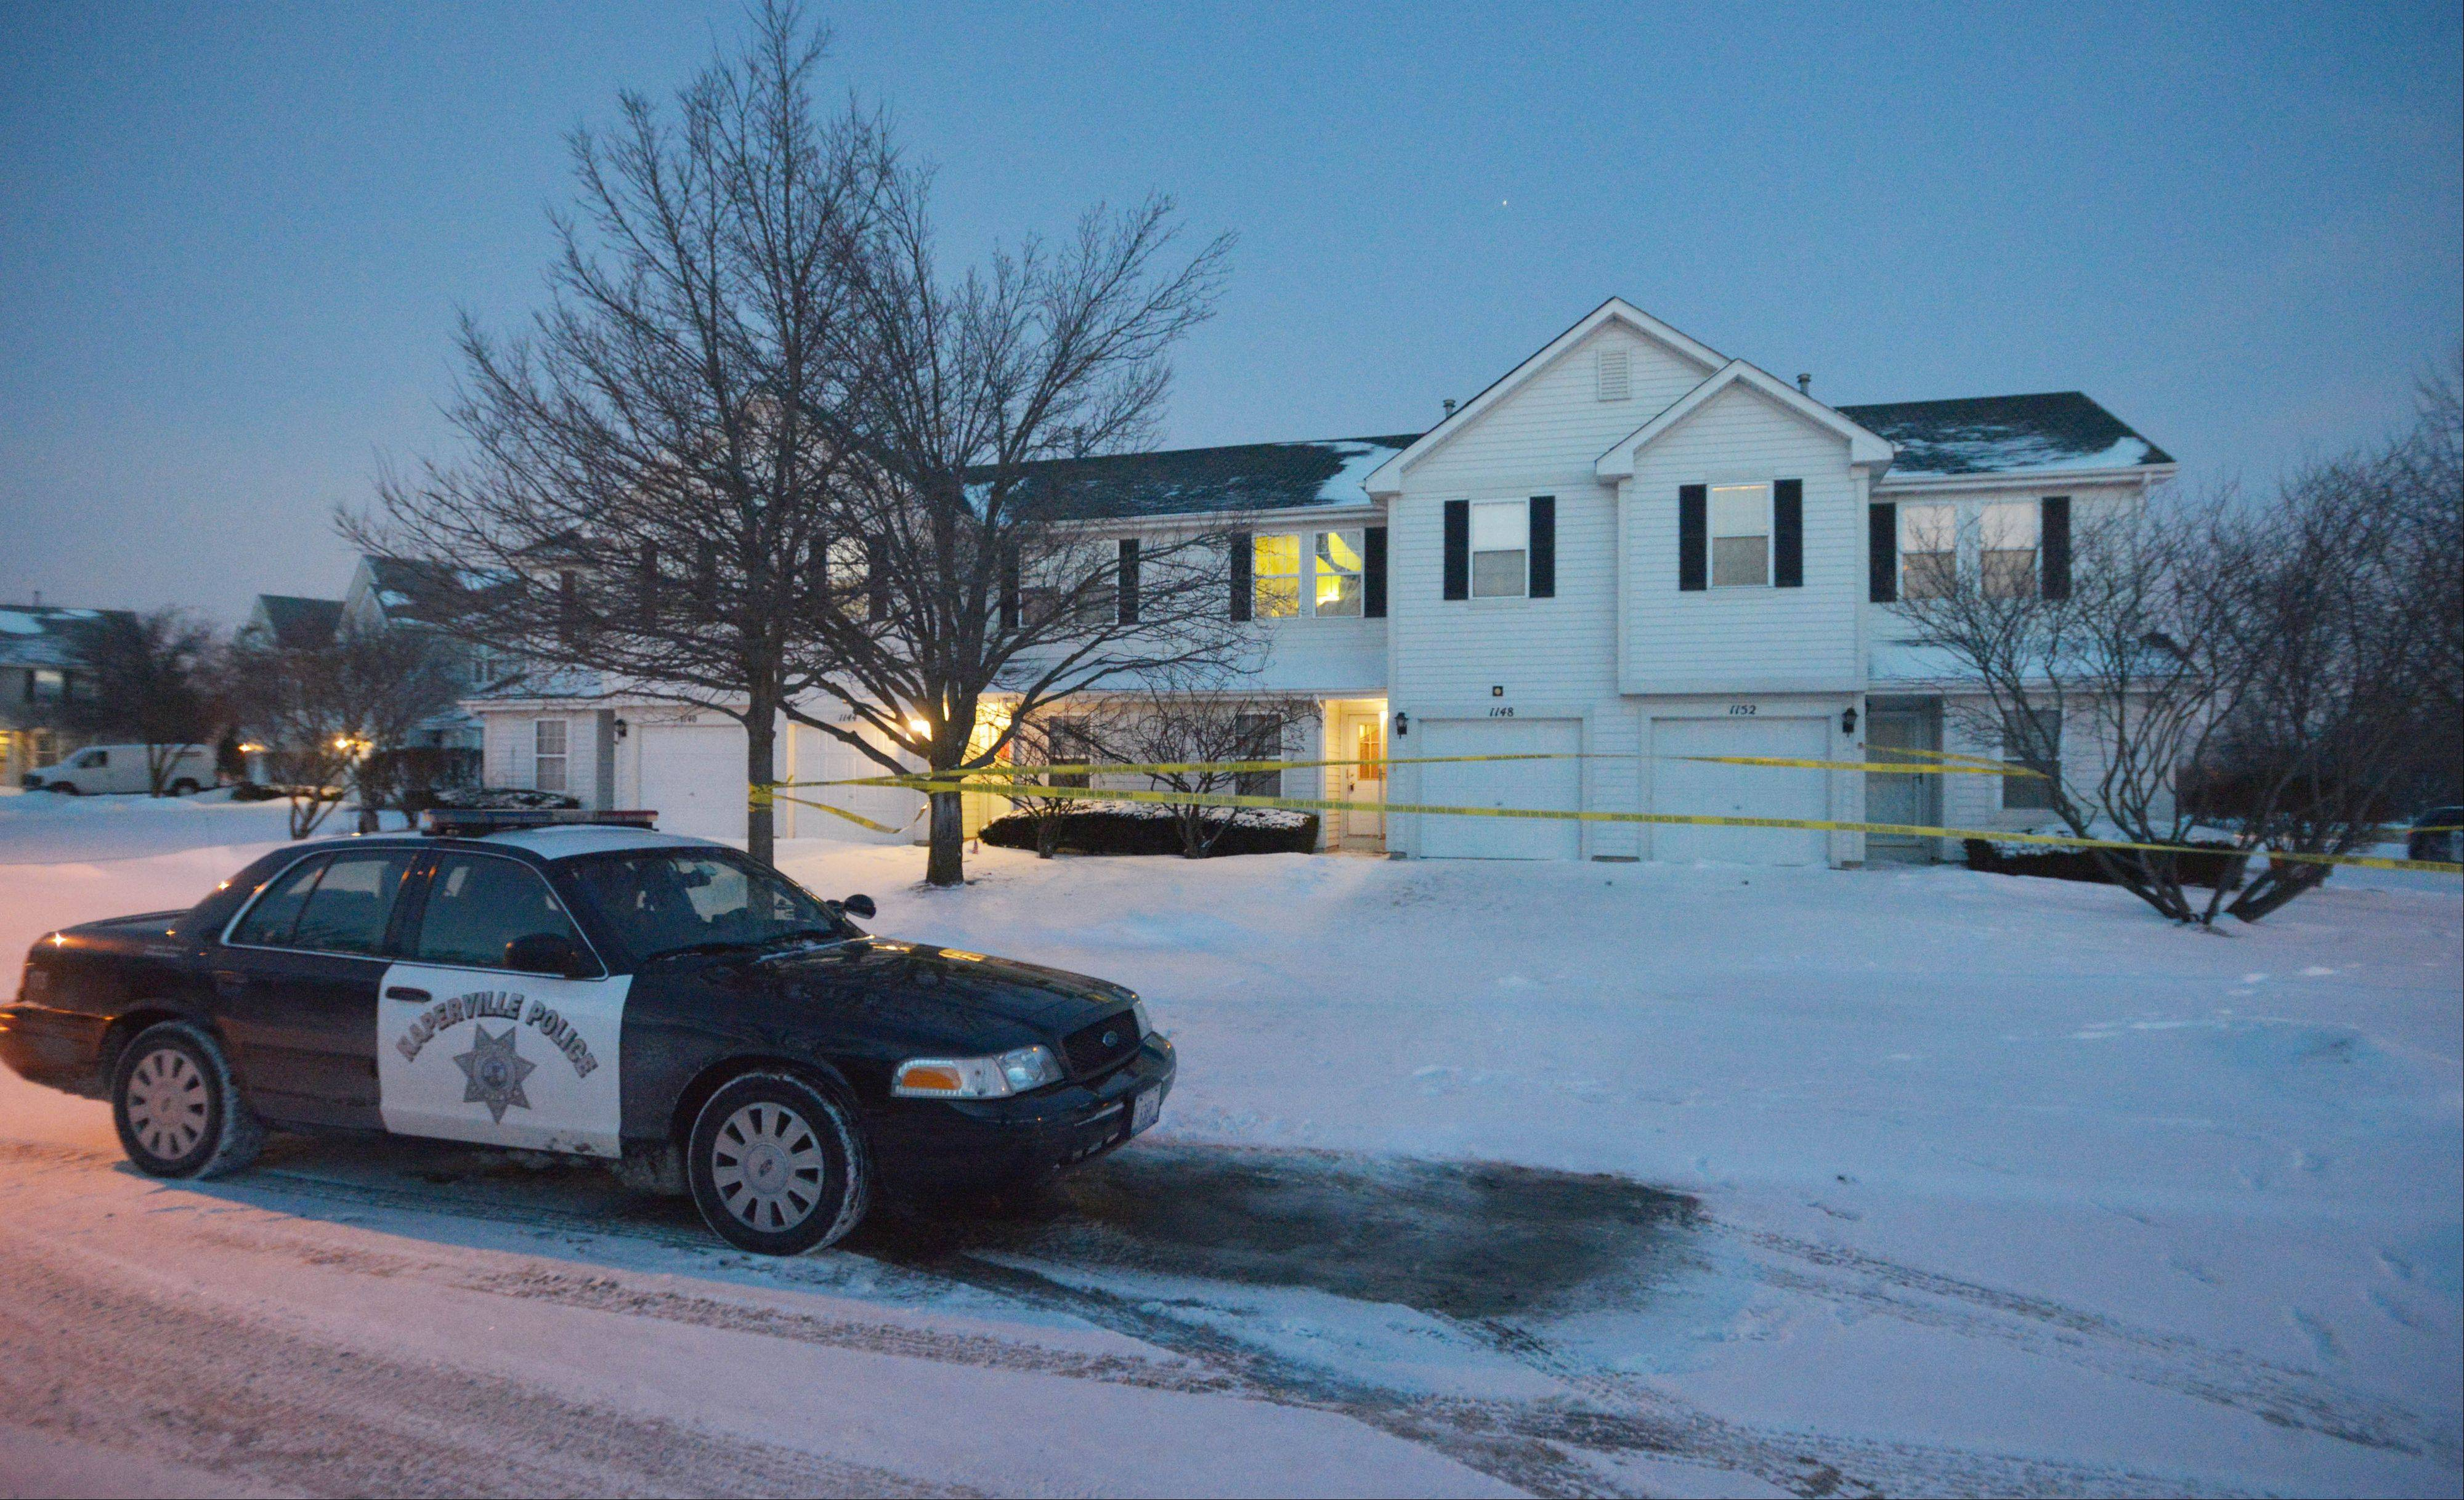 Naperville police are investigating the suspicious death of a man found Wednesday morning in a townhouse on Vail Court.